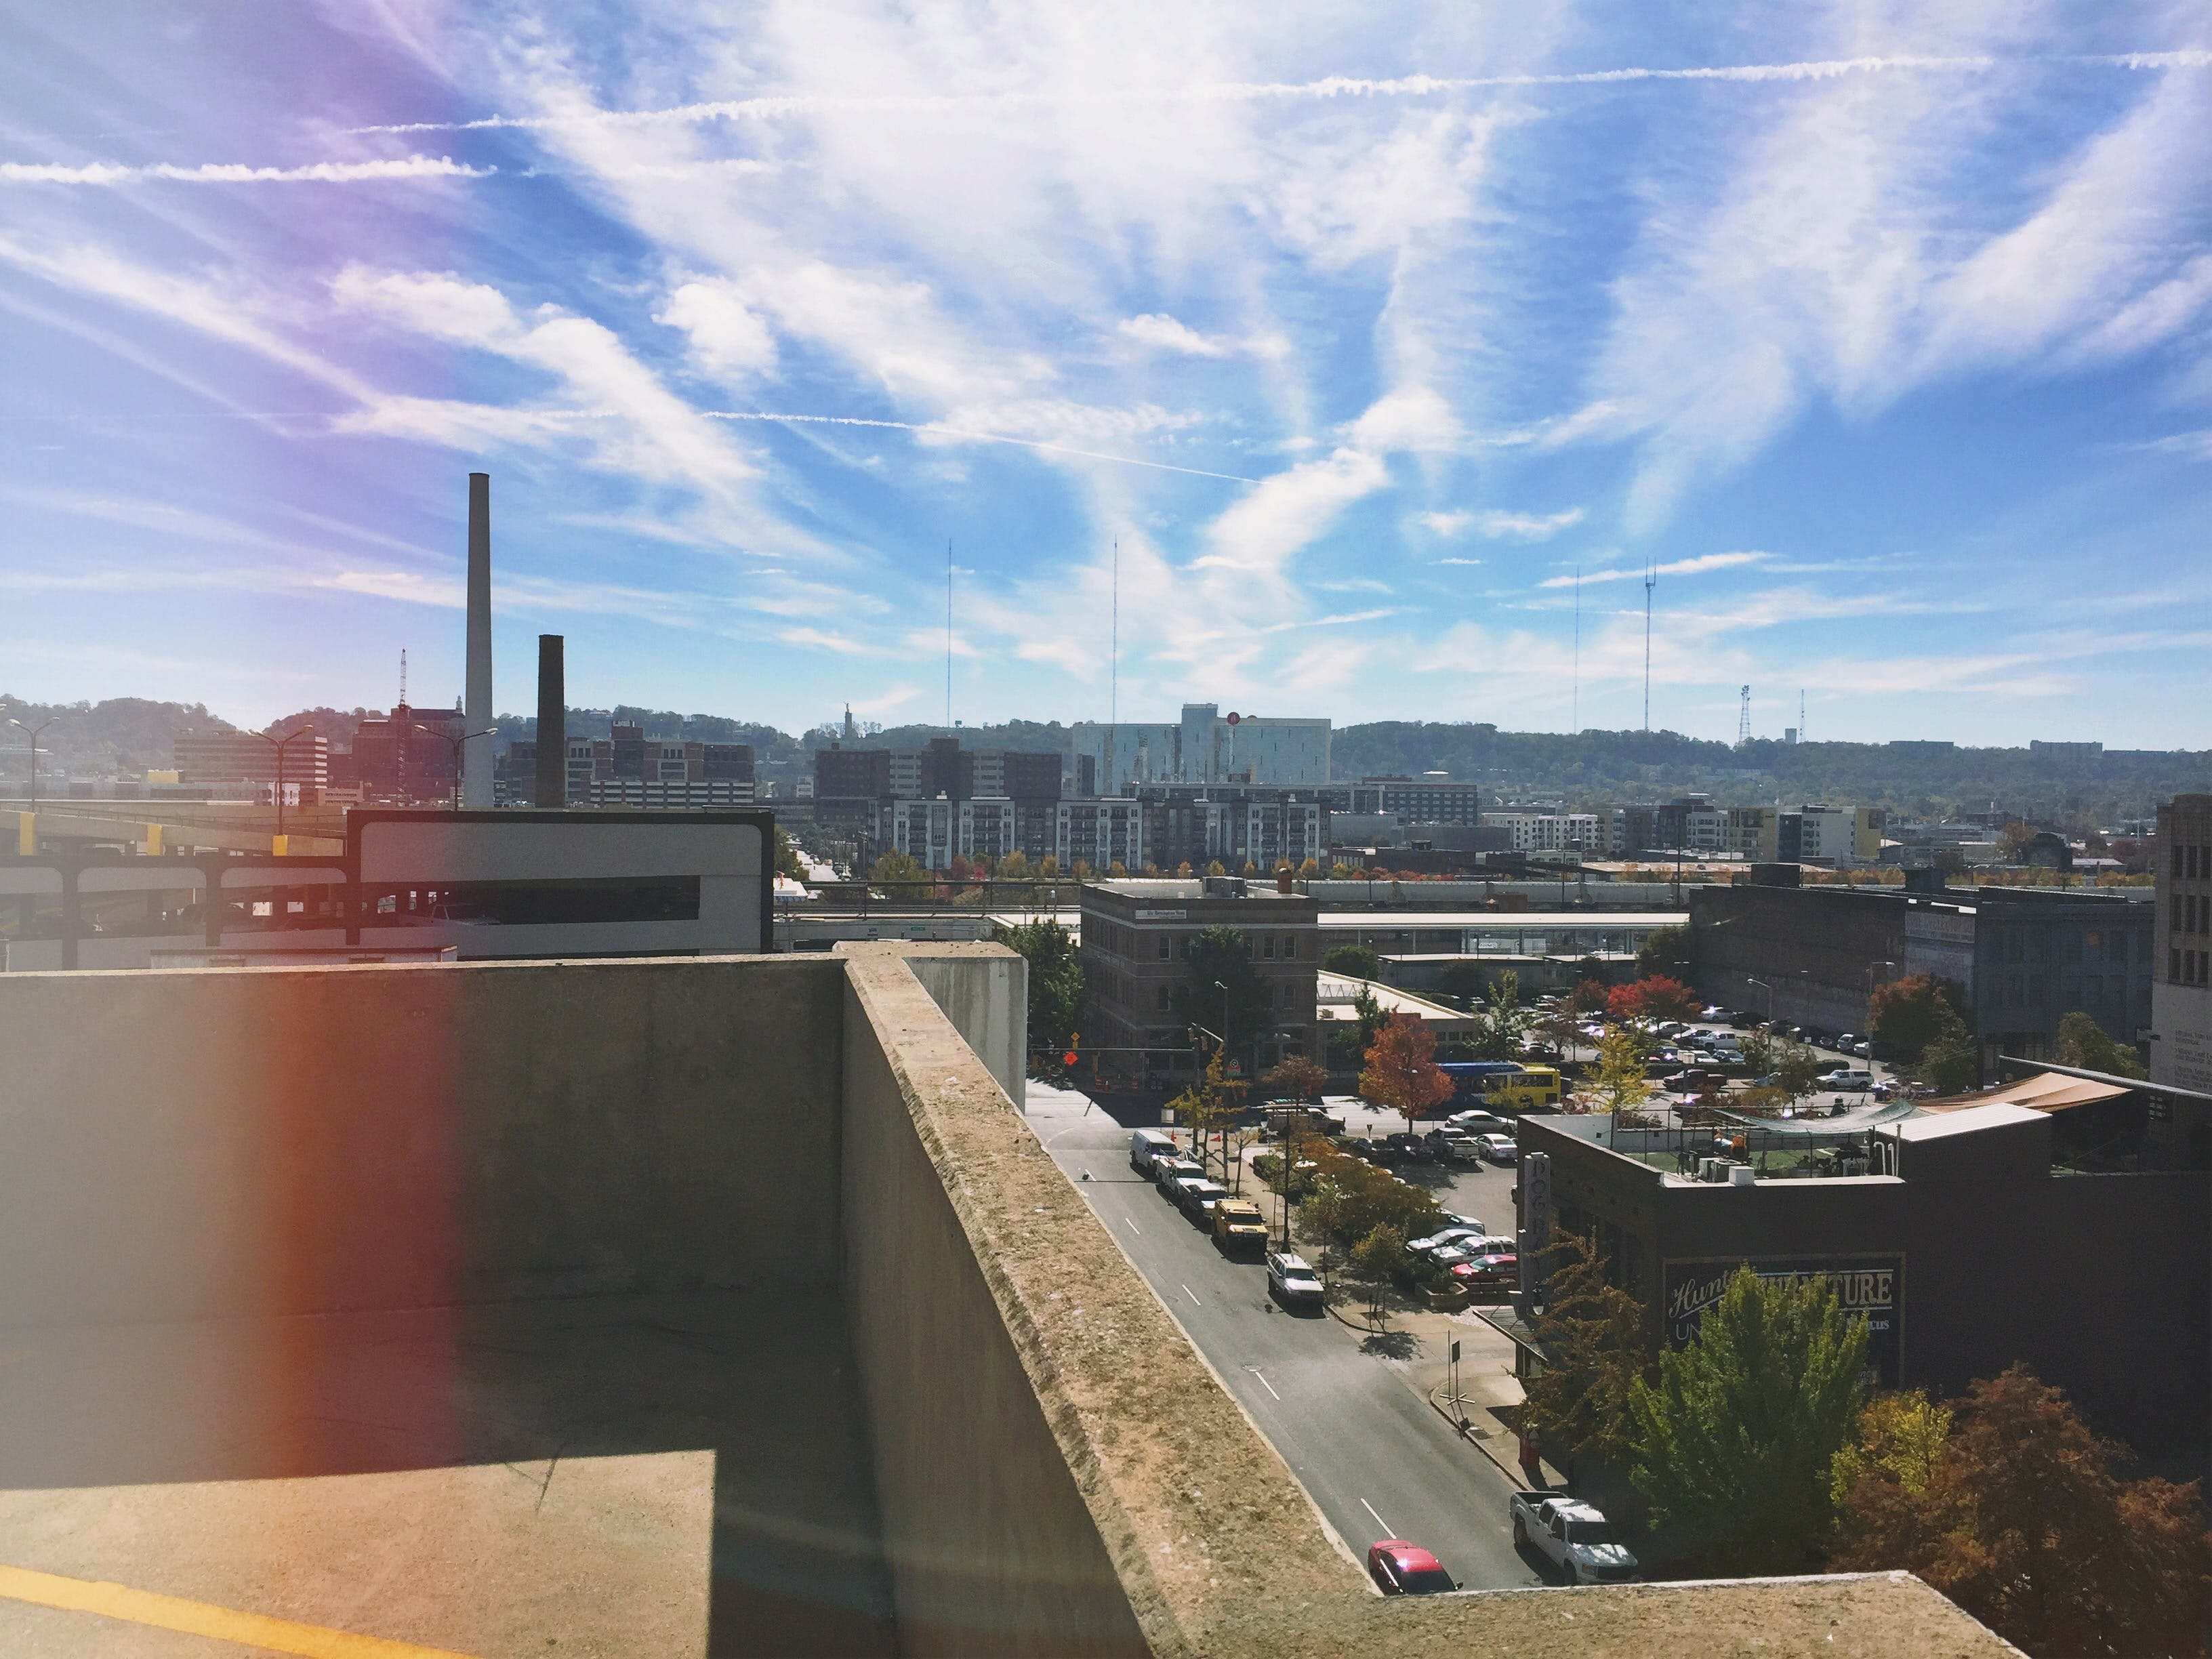 Free stock photo of city, clouds, mountain, sky